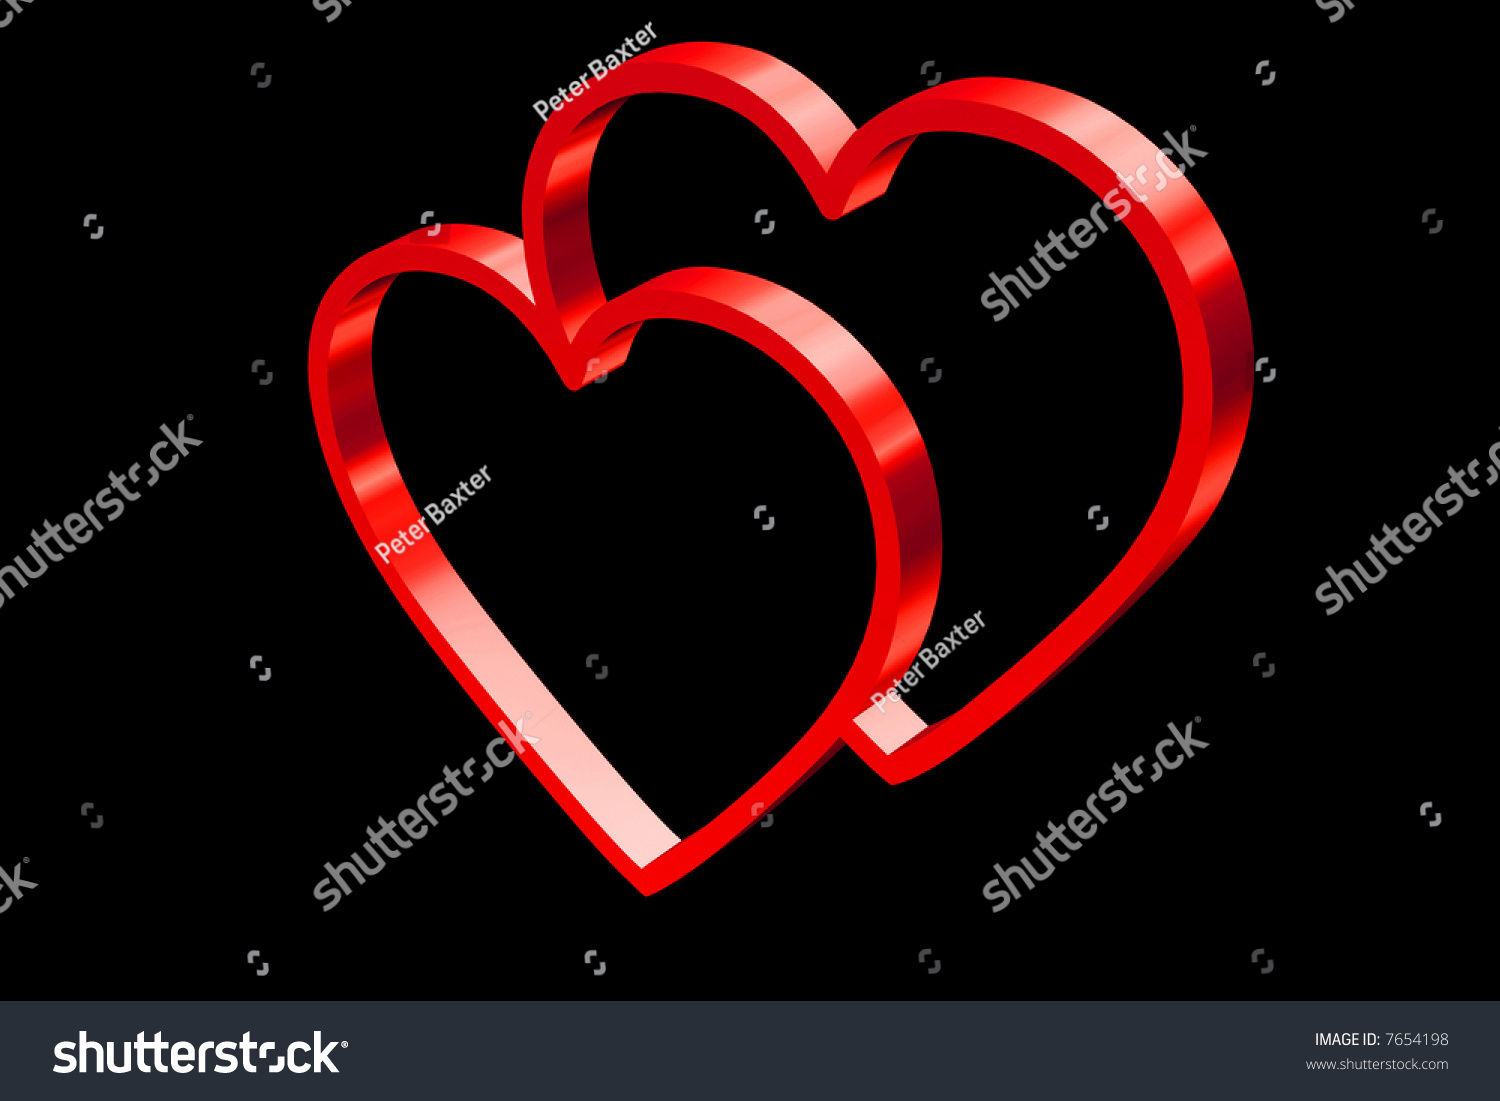 Two Hearts One Symbol Love Stock Illustration 7654198 Shutterstock